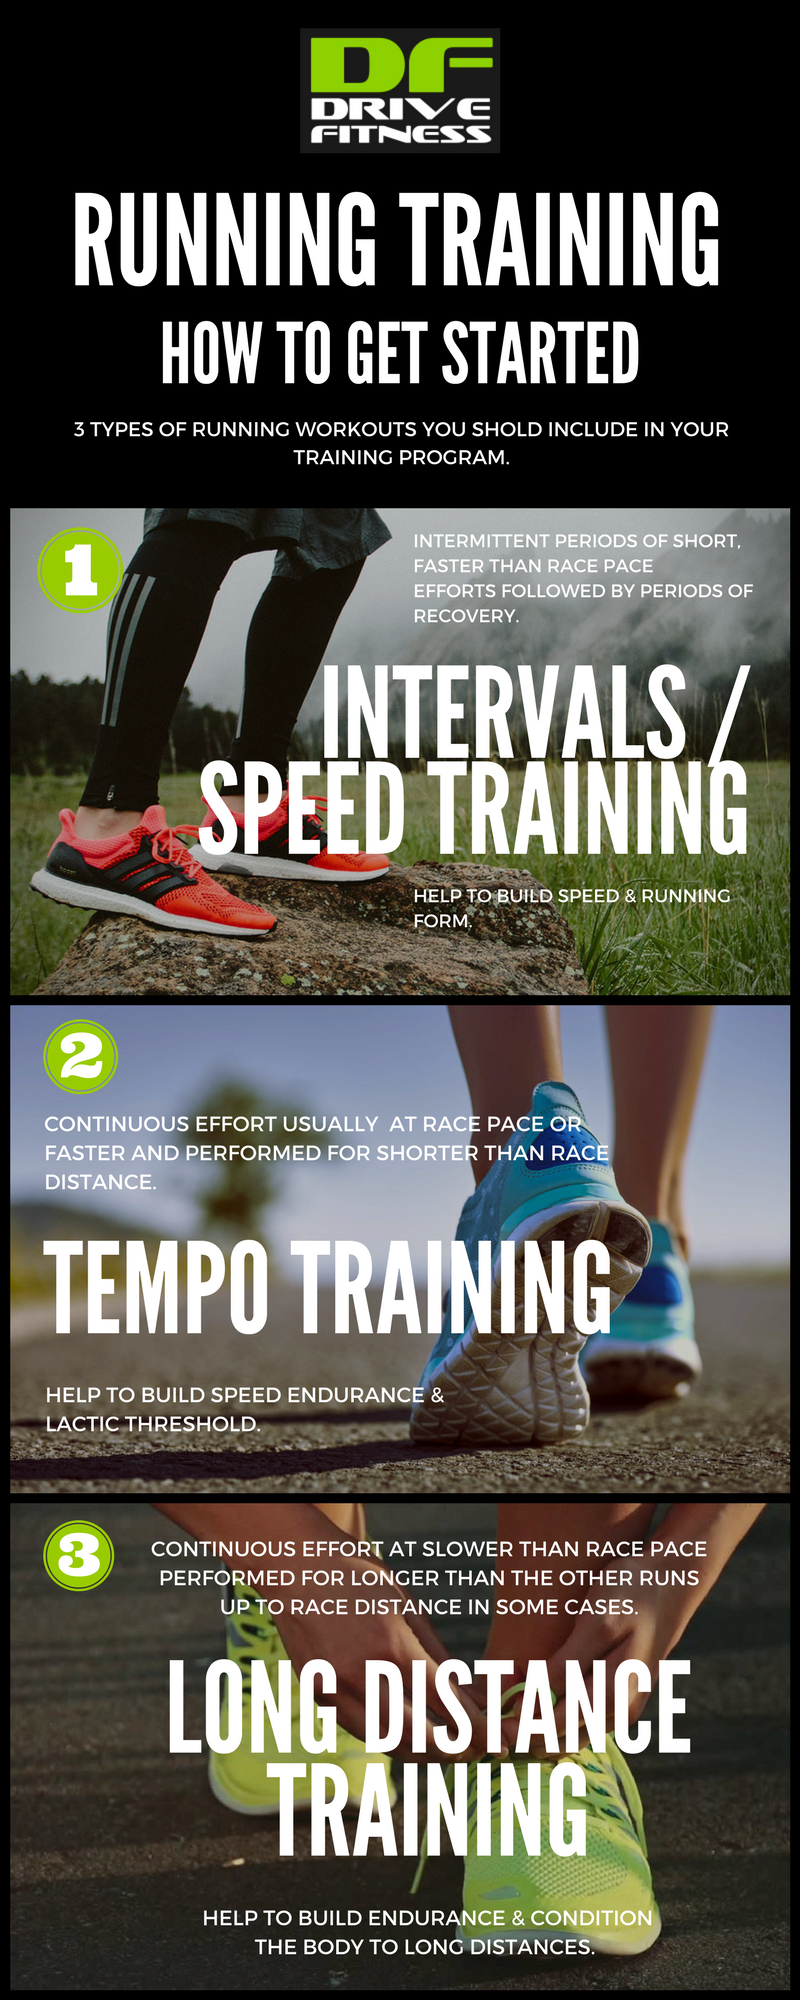 Copy of Info graphic on distance running training.png